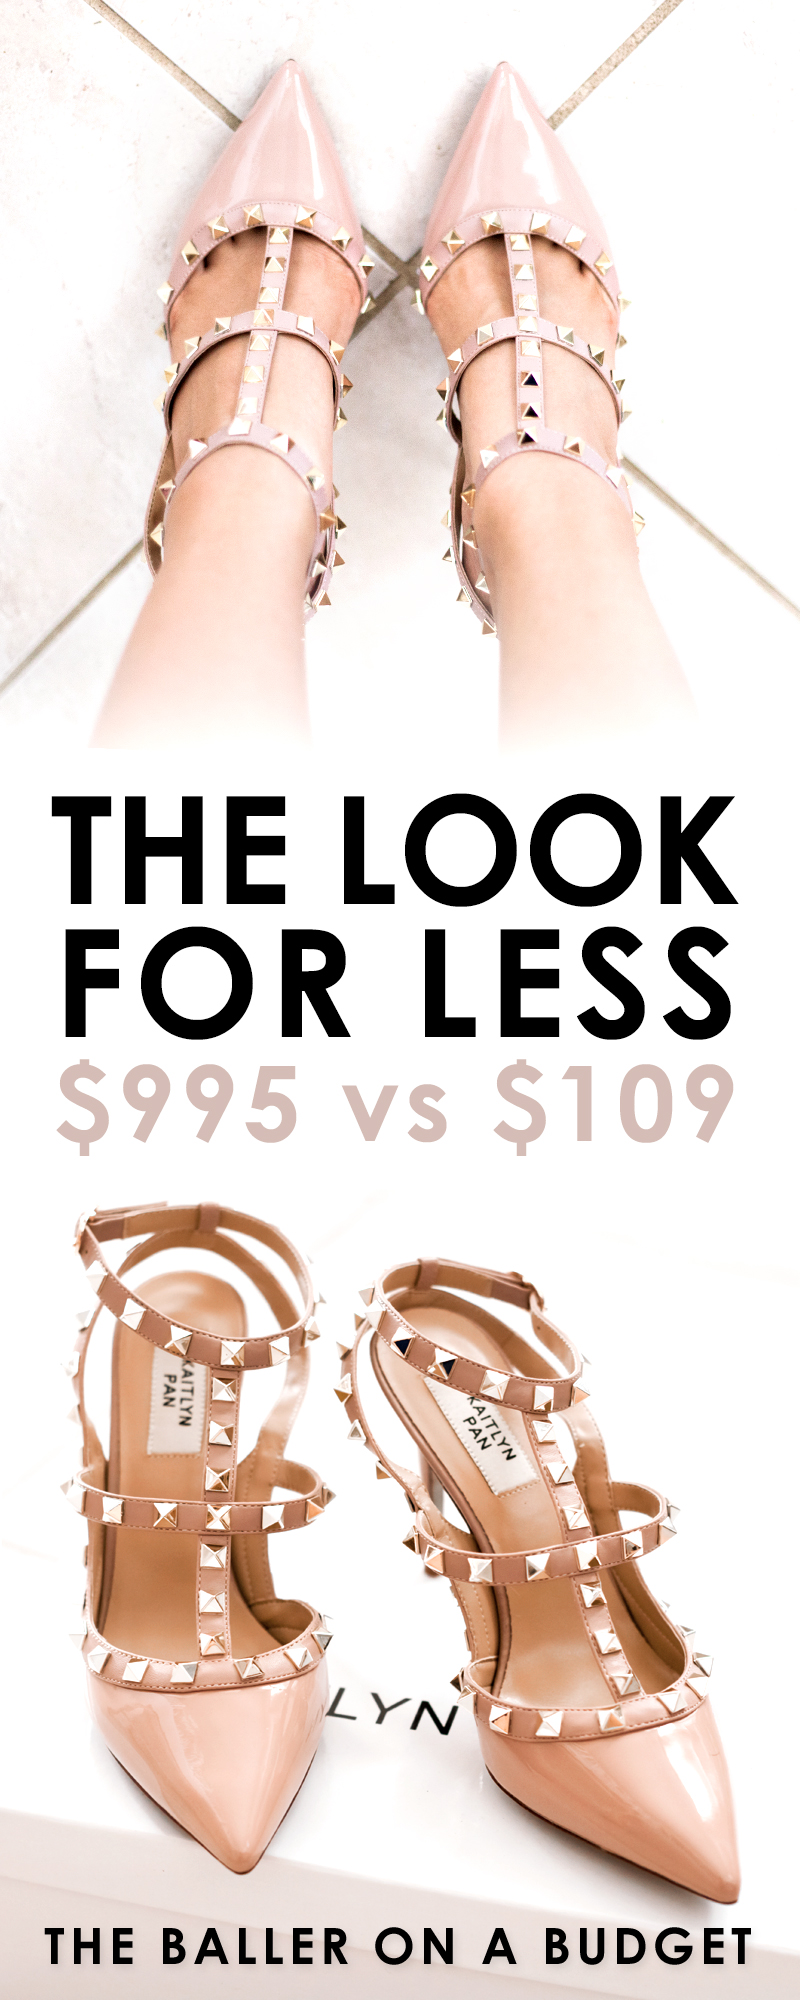 Valentino's Rockstud is a gorgeous heel priced at $995. We found a similar pair made of genuine leather and lambskin for only $109! Read the full review and find out where to buy here. - www.theballeronabudget.com